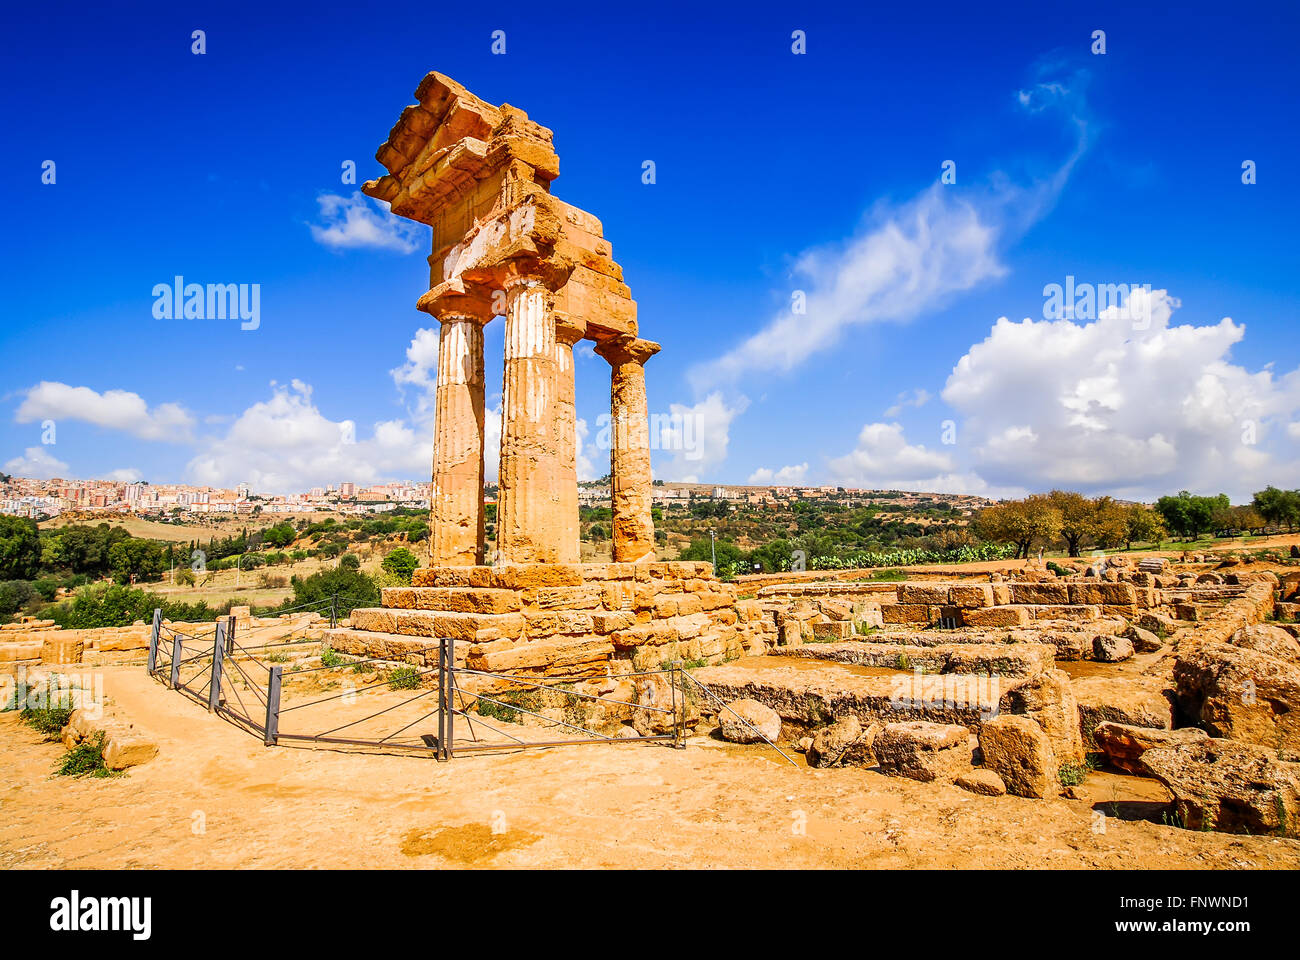 Agrigento, Sicily. Temple of Castor and Pollux one of the greeks temple of Italy (Magna Graecia). The ruins are - Stock Image